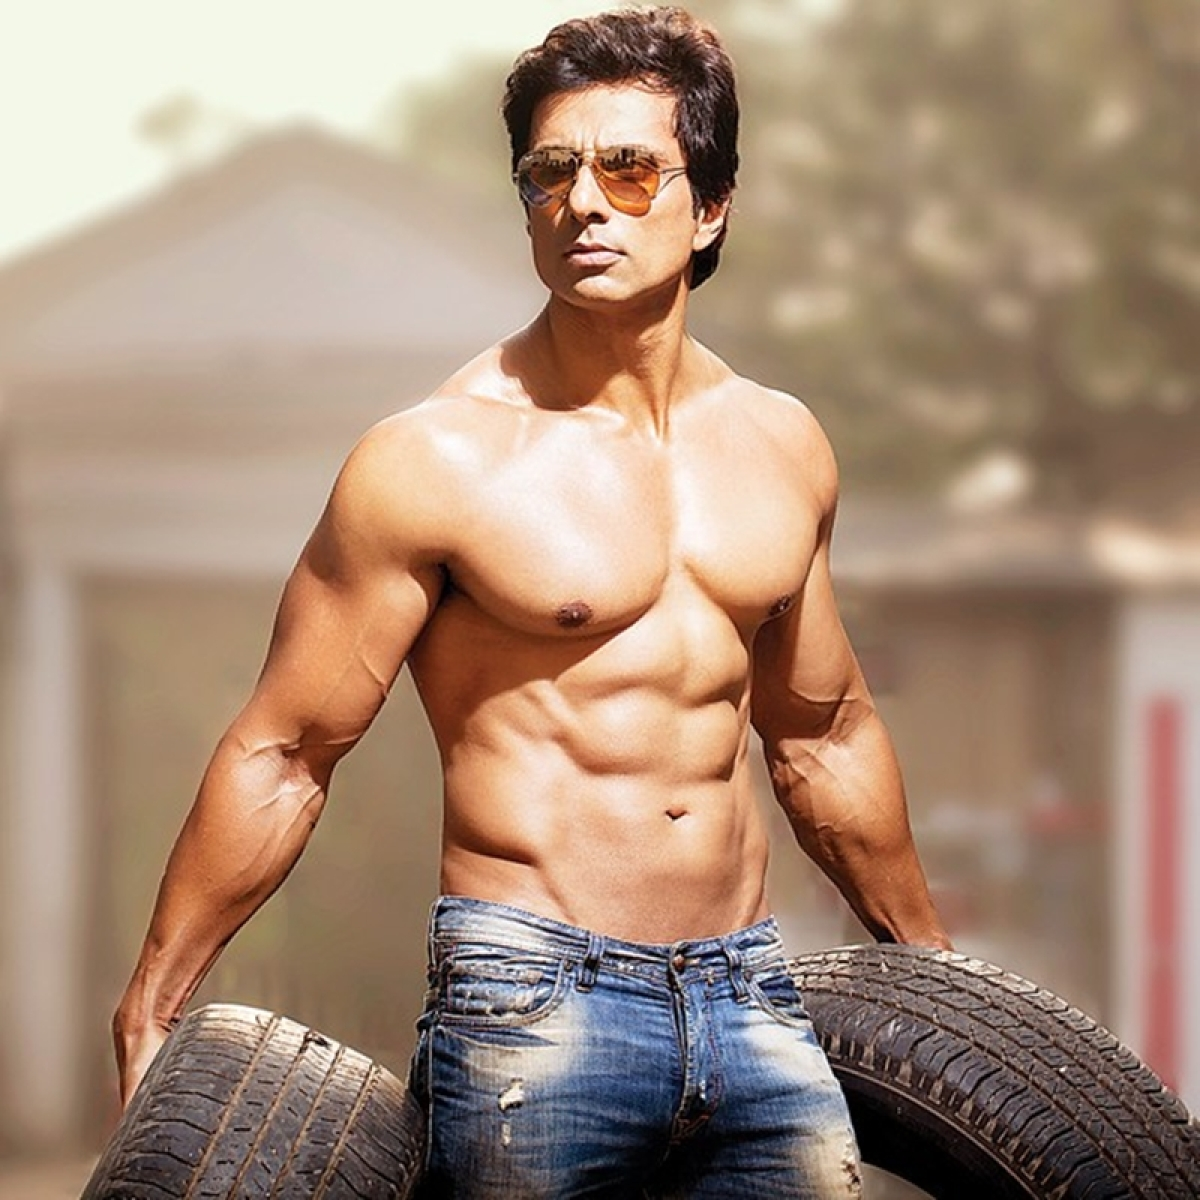 Sonu Sood takes up lessons to match Ranveer Singh's Marathi catchphrases in 'Simmba'